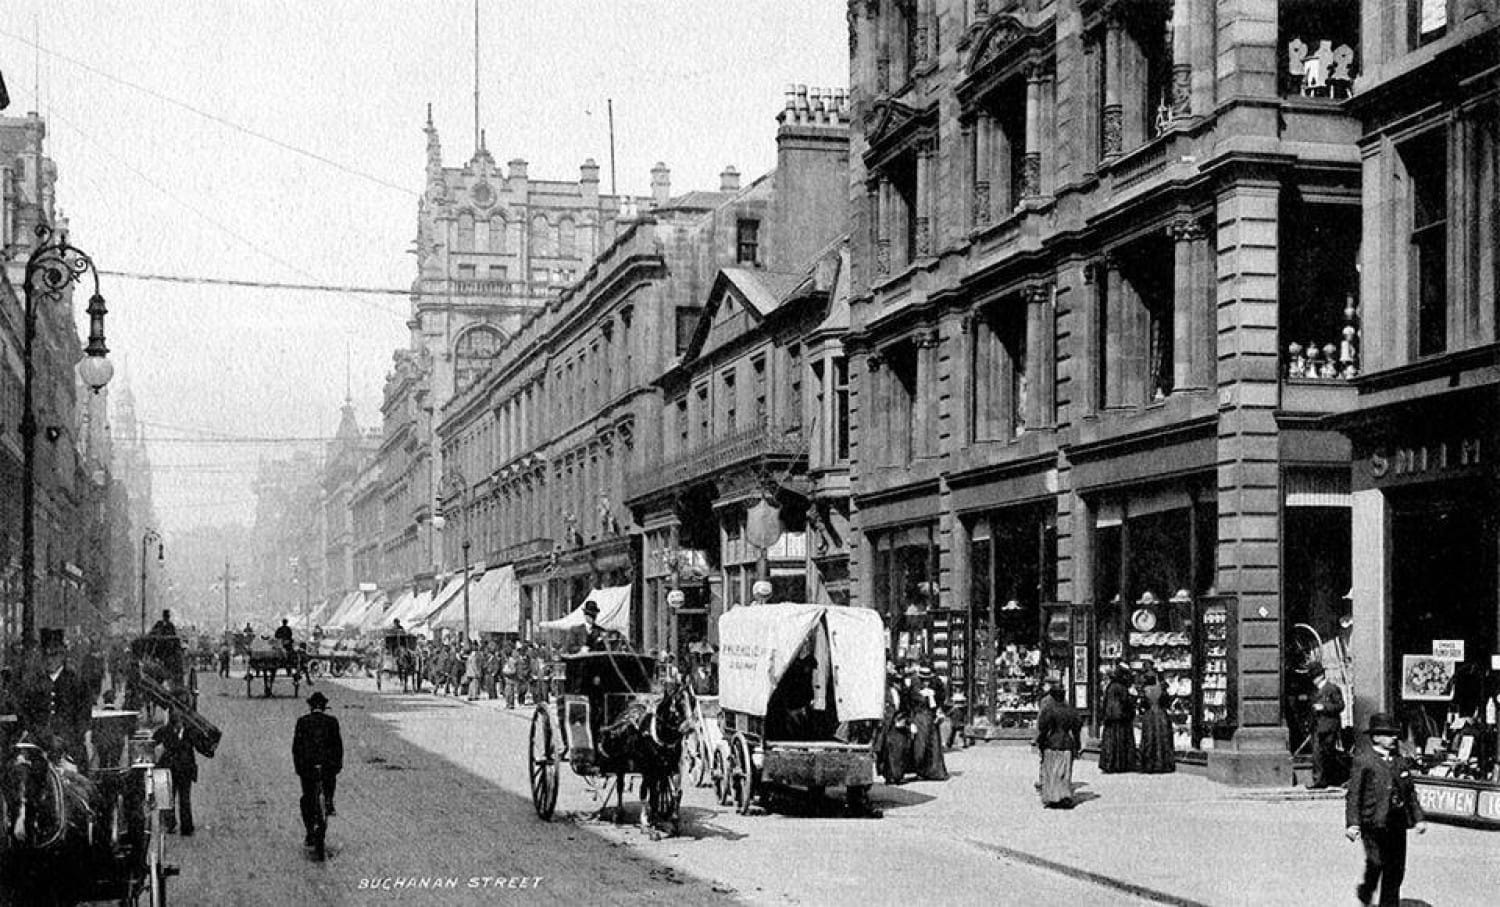 From Peterloo to Argyll Arcade